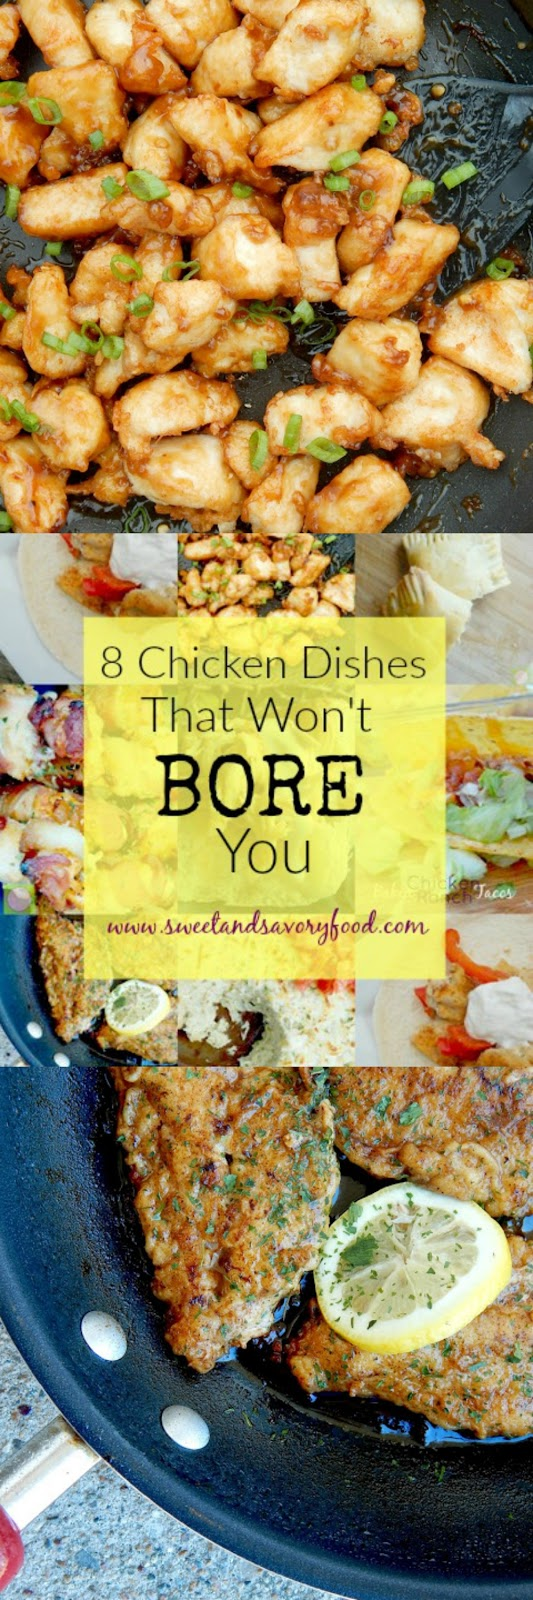 8 chicken dishes that won't bore you (sweetandsavoryfood.com)